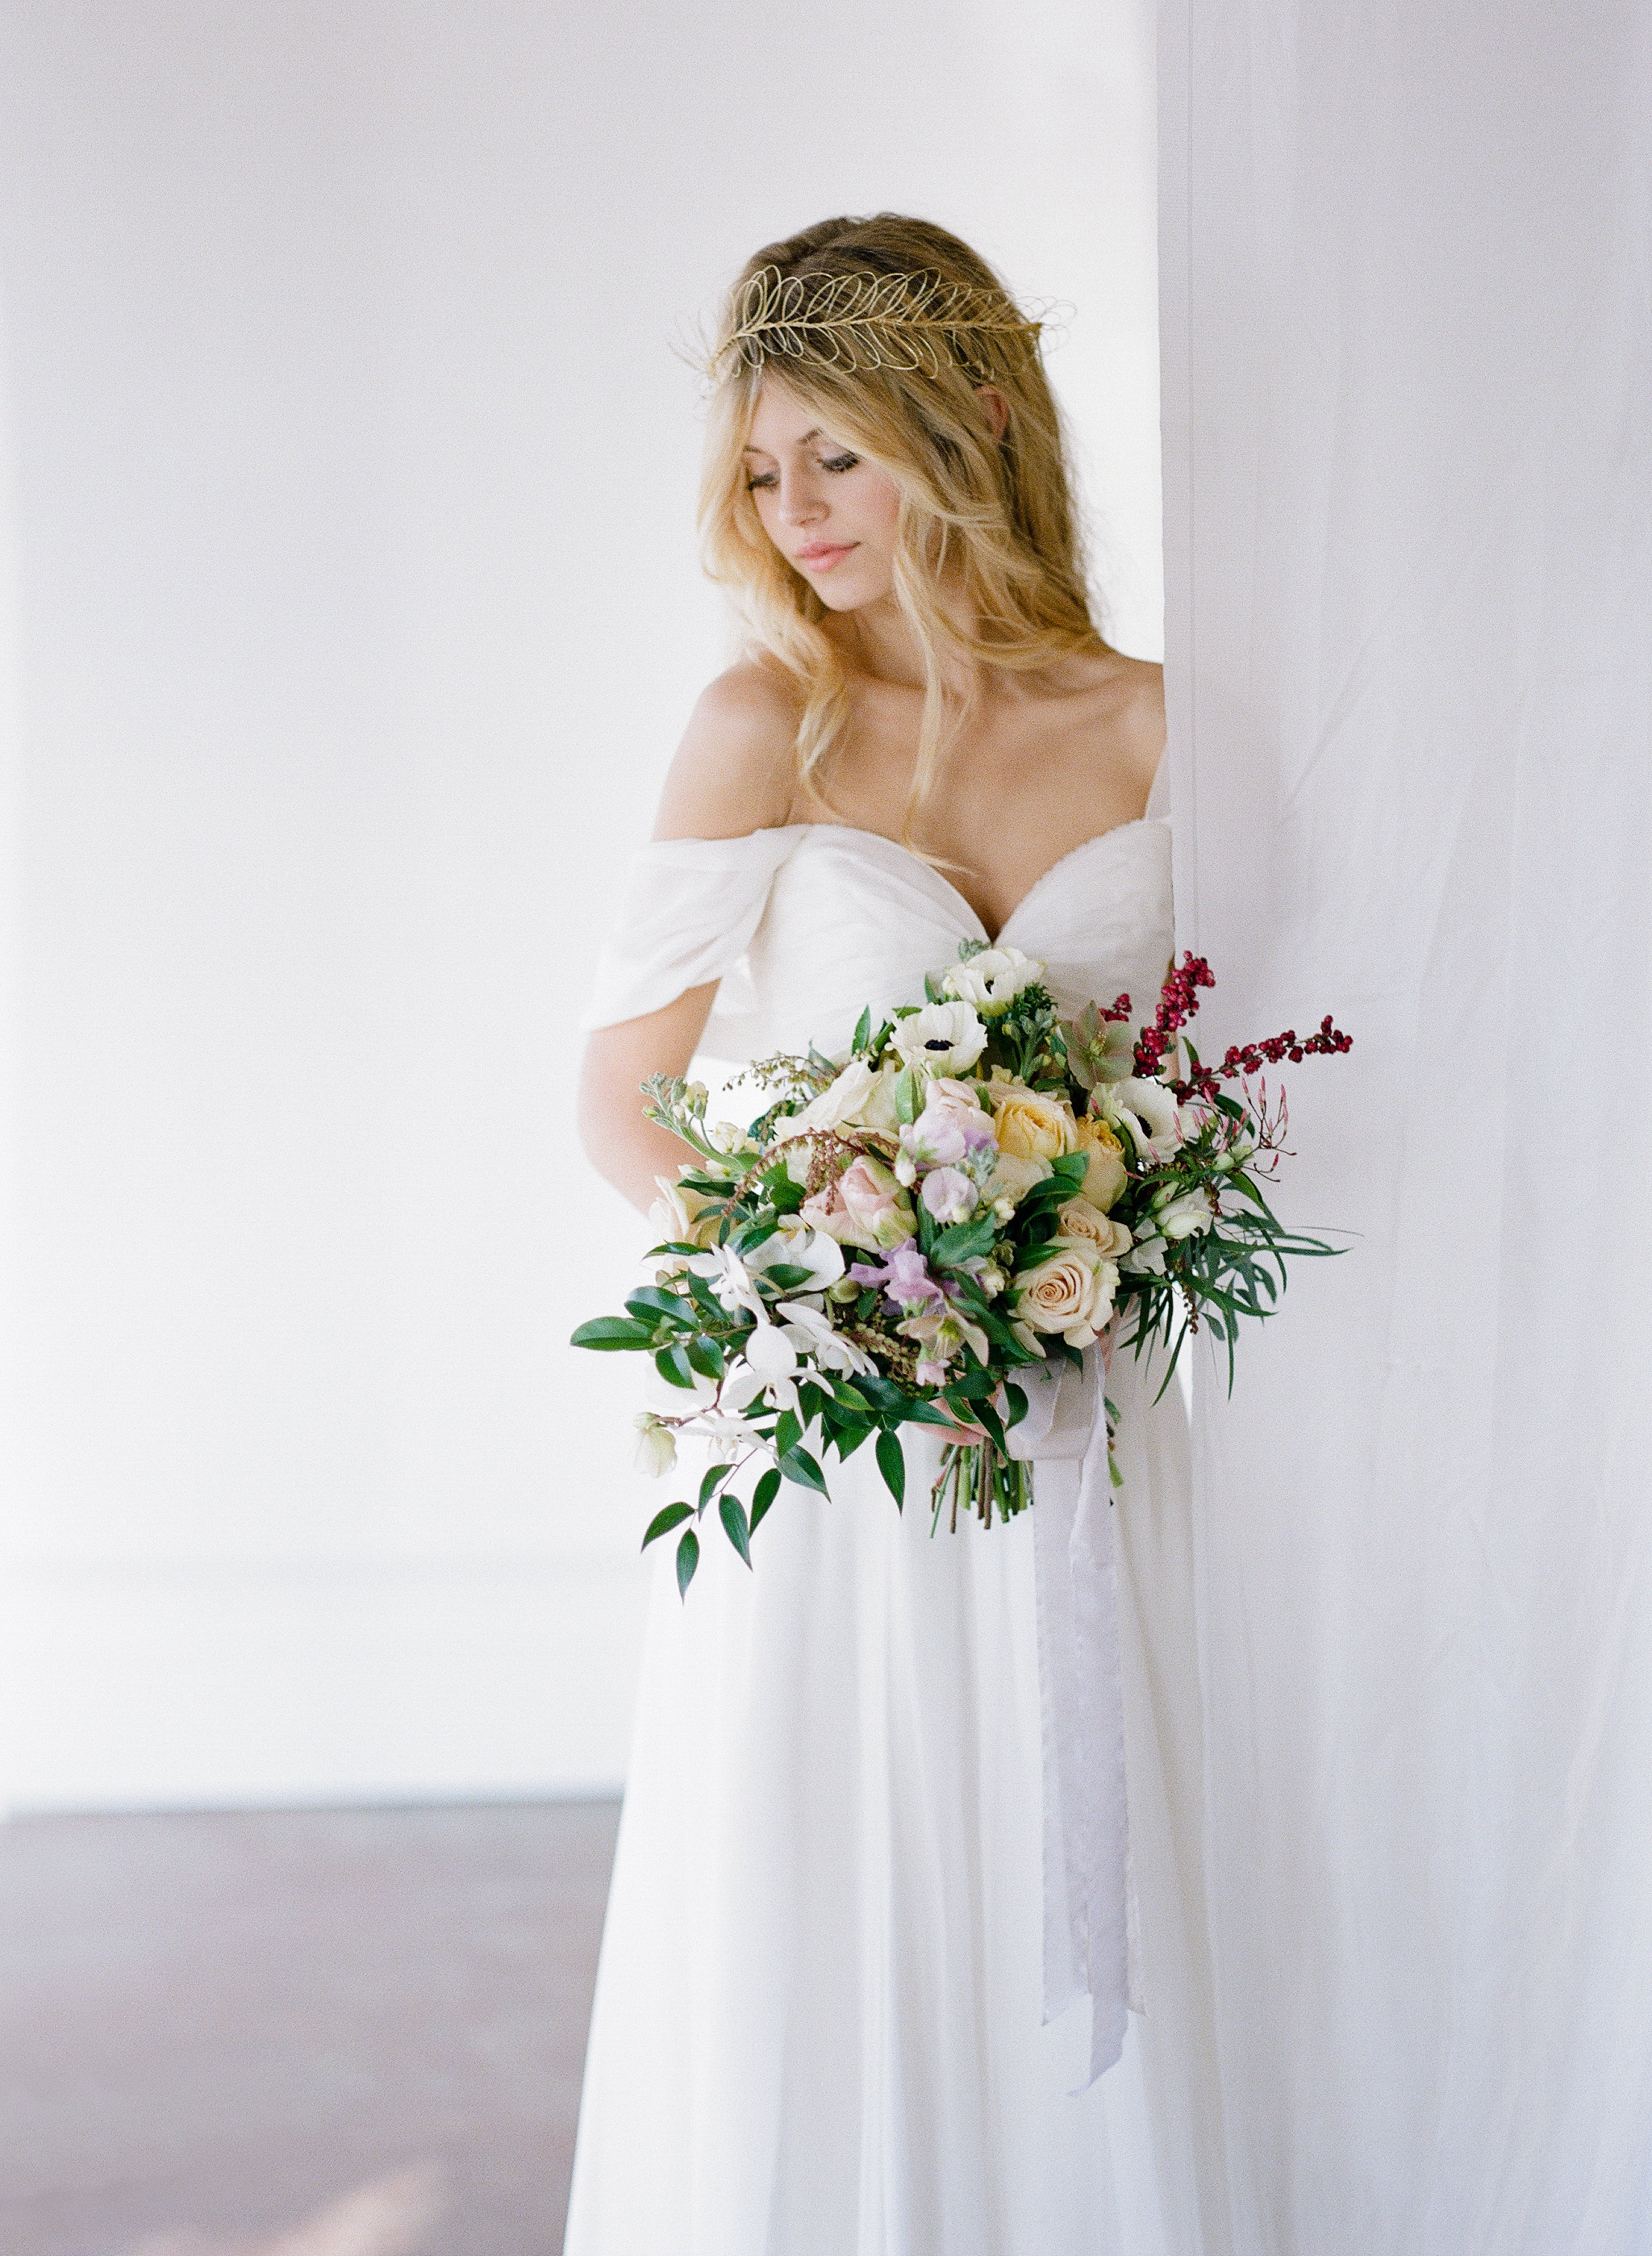 Styled Shoot at Ardor-Web Images-0002.jpg